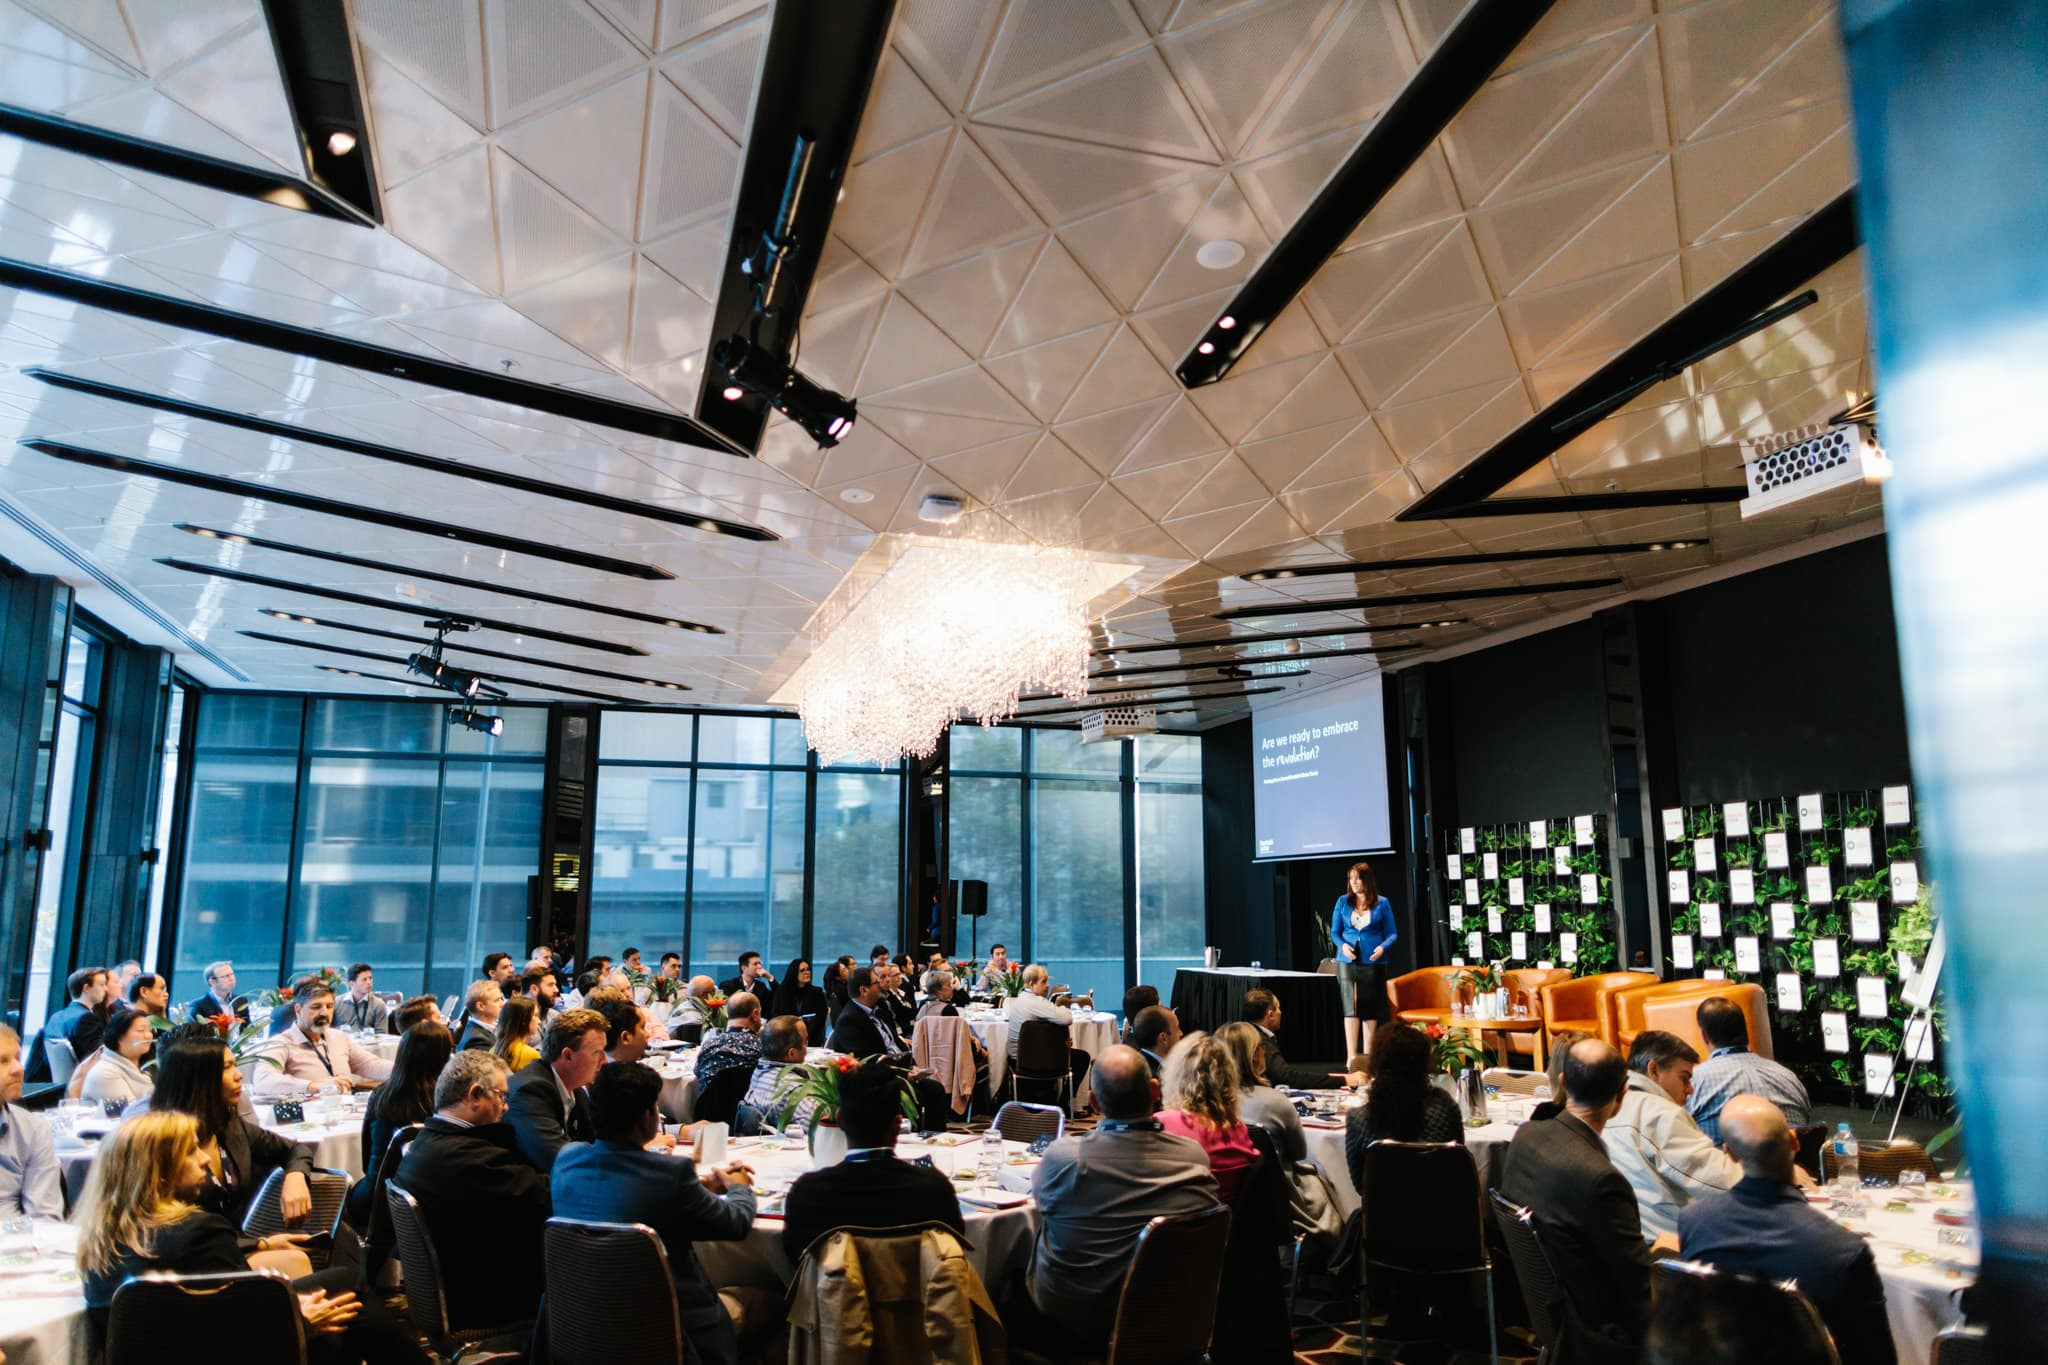 Conference Photographer Melbourne - Creative and candid documentation of customer and client events in melbourne - Commercial usage